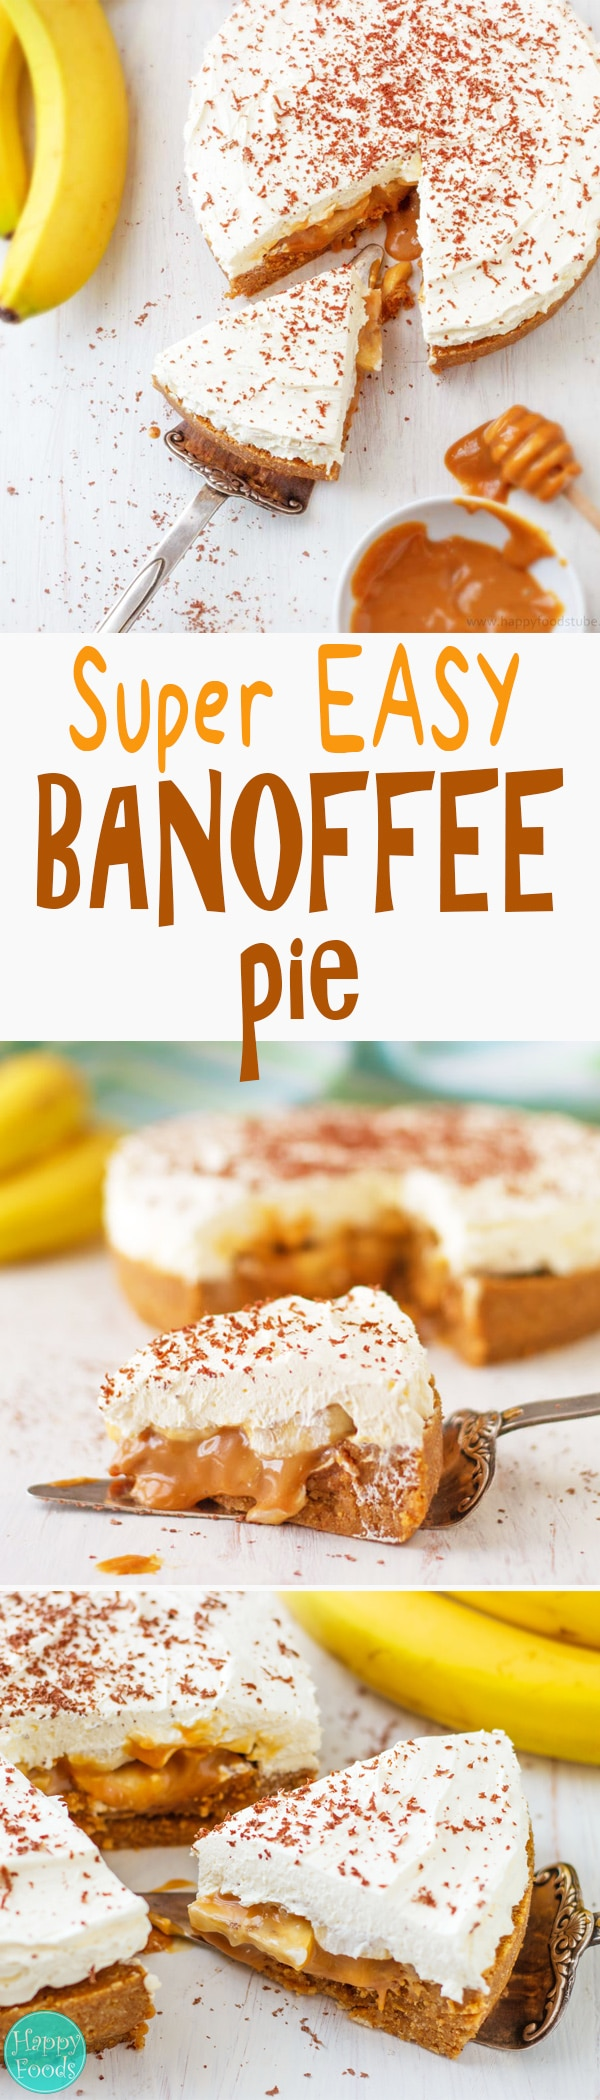 No Bake Banana Banoffee Pie Recipe Video Happyfoods Tube